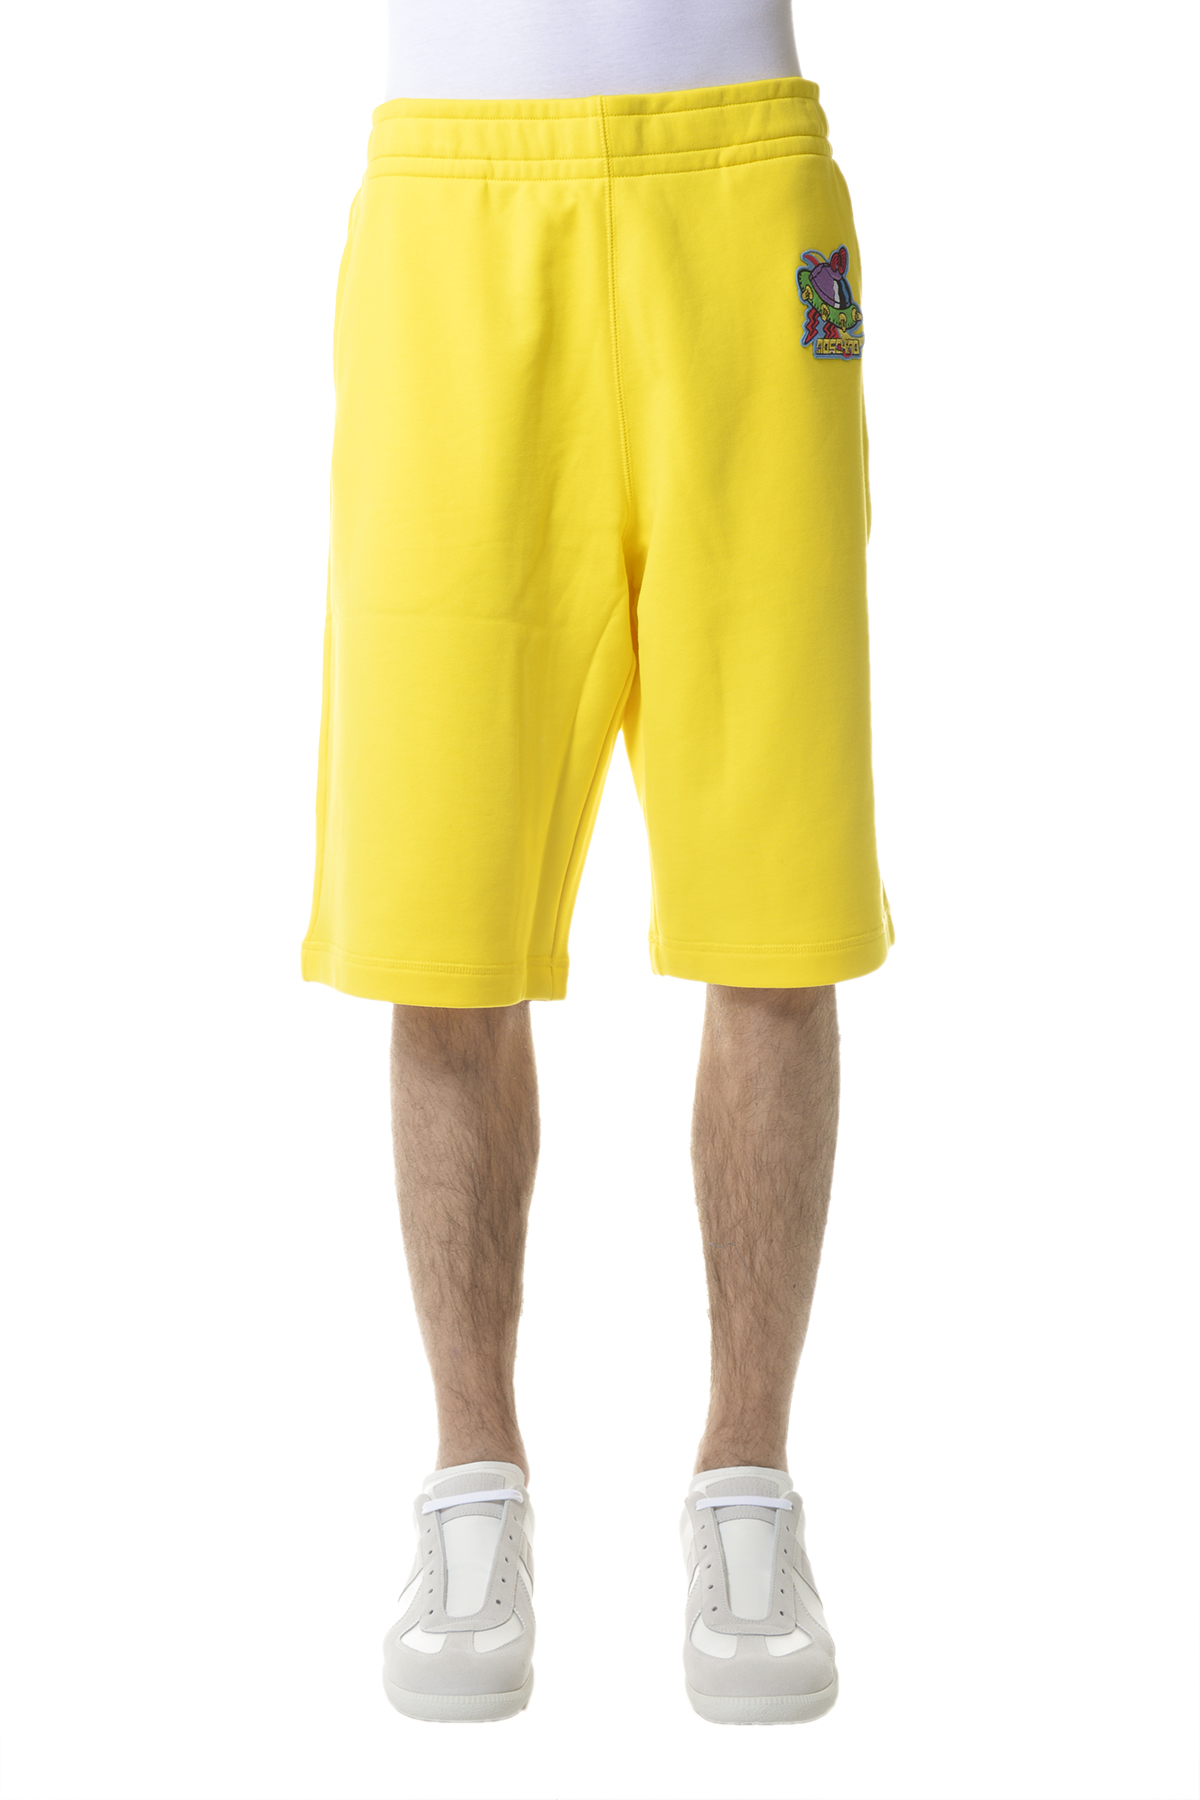 Moschino SHORTS YELLOW